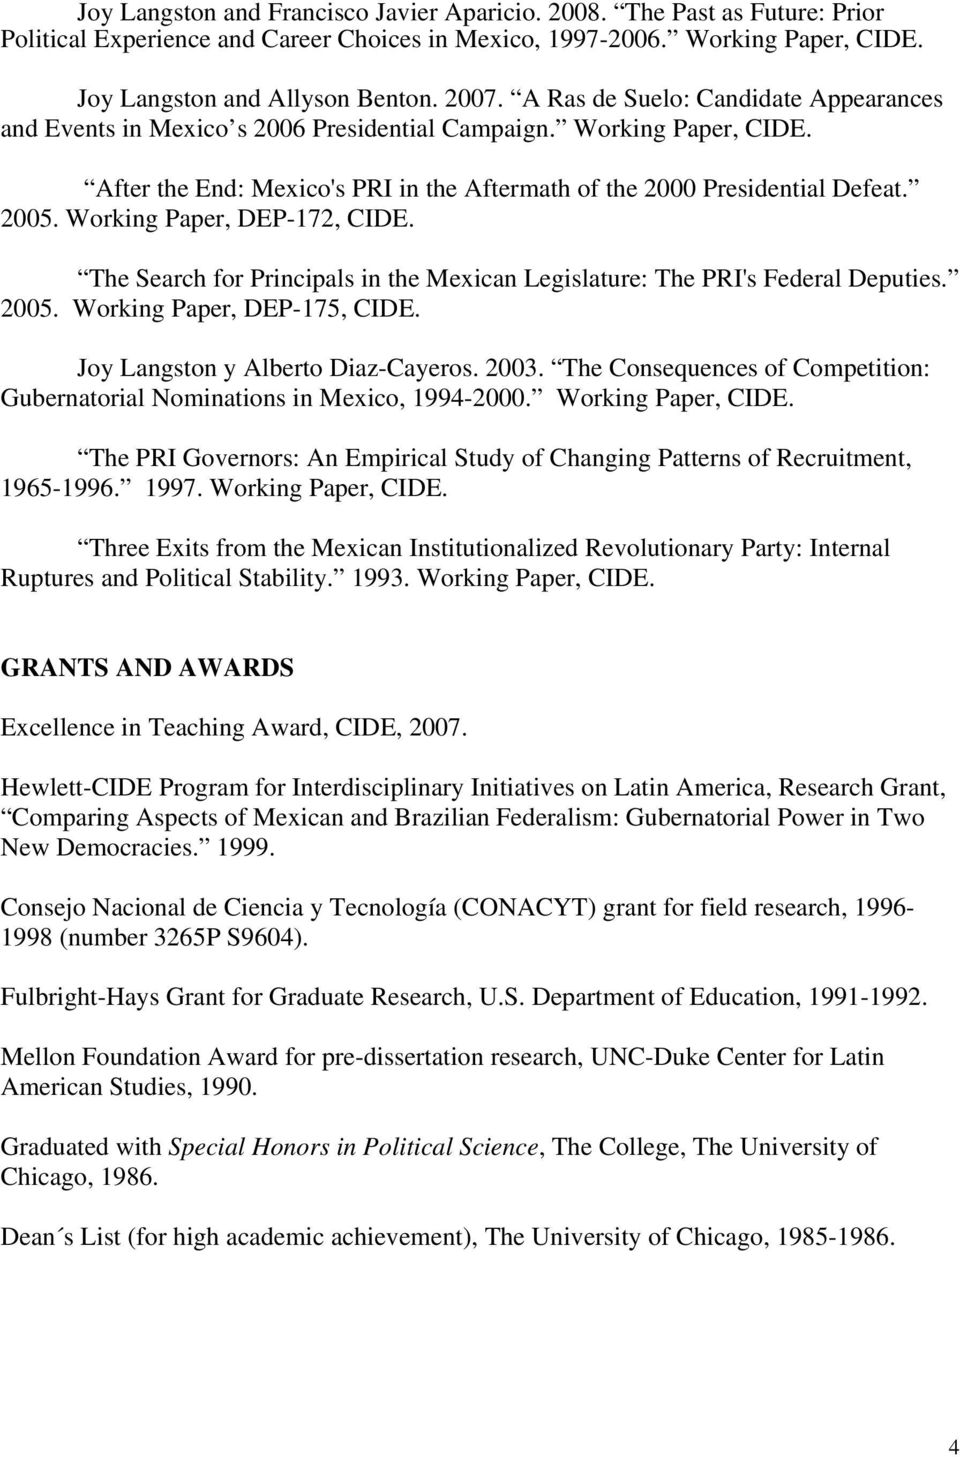 Working Paper, DEP-172, CIDE. The Search for Principals in the Mexican Legislature: The PRI's Federal Deputies. 2005. Working Paper, DEP-175, CIDE. Joy Langston y Alberto Diaz-Cayeros. 2003.